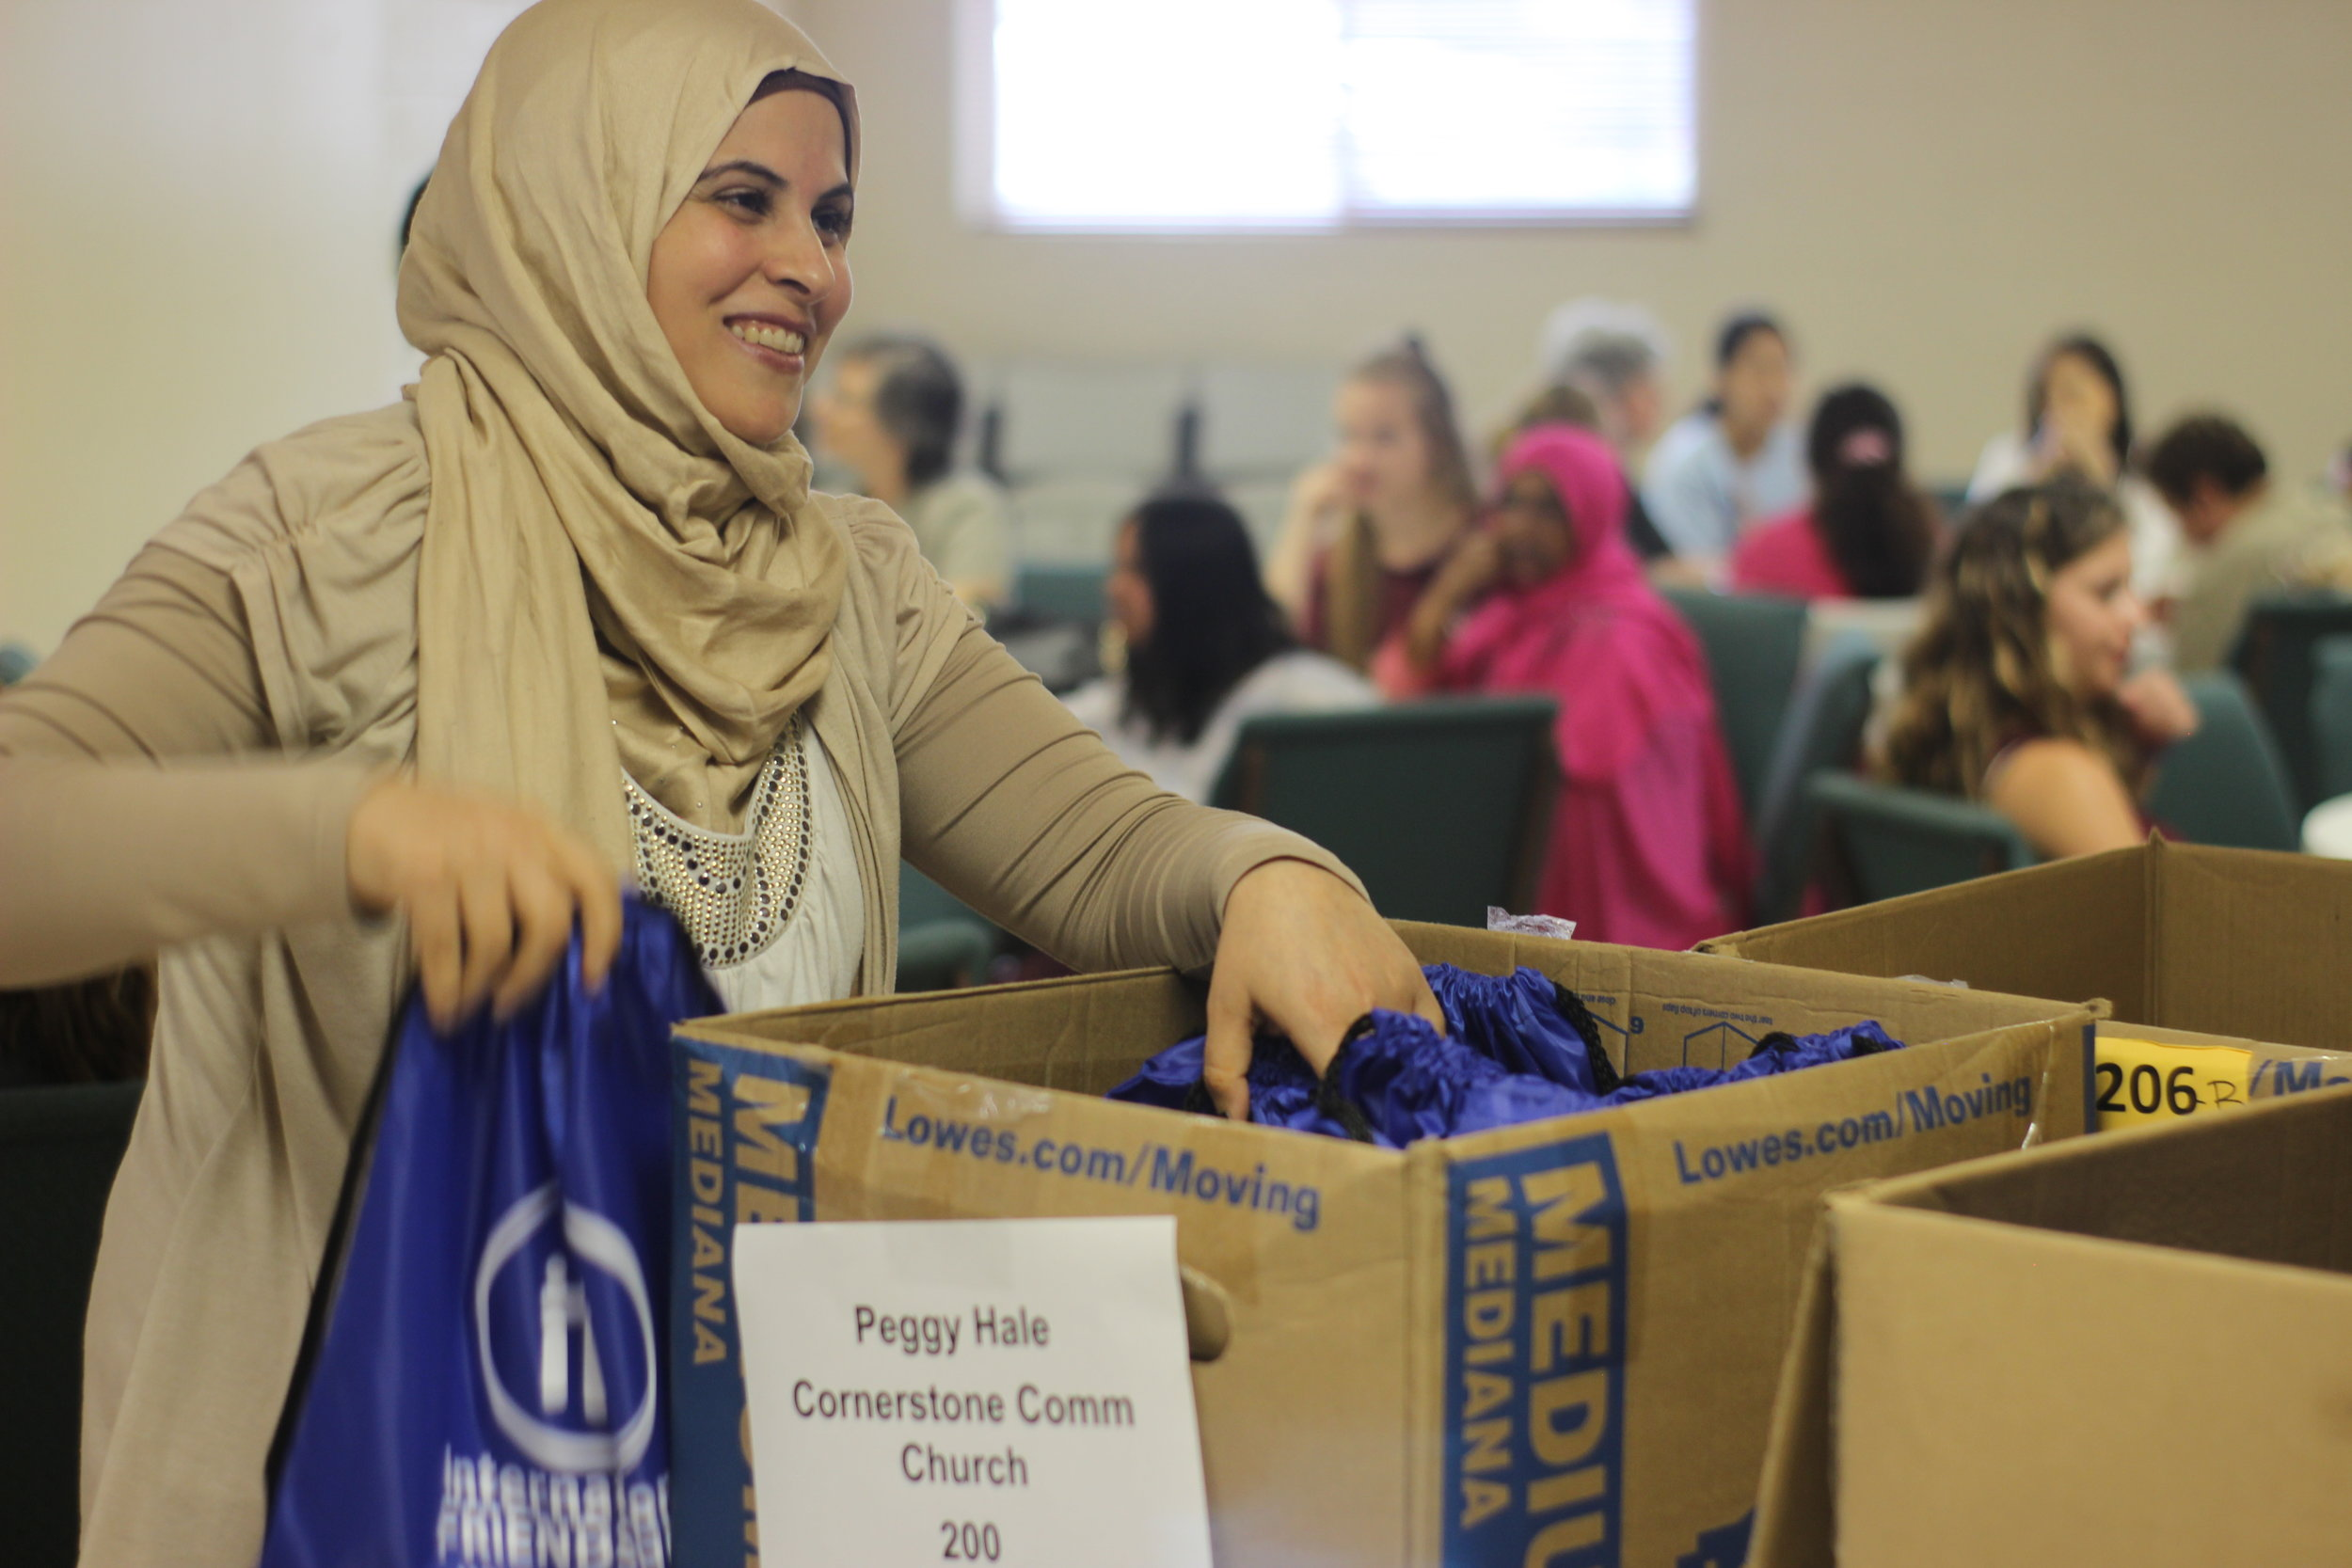 SLAM participants helped the refugee women put together backpacks for new international students attending Ohio State University. Simple things like gathering school supplies can be difficult when you don't know the language or where to shop for items!